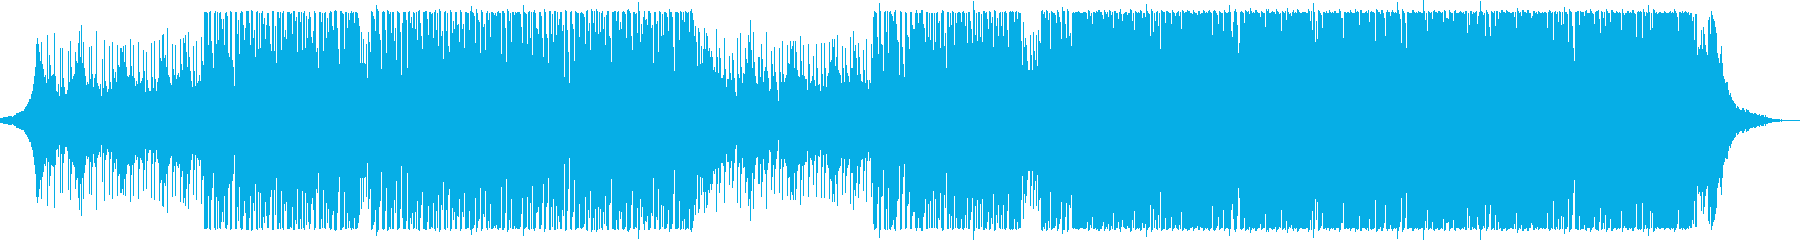 Christmas, inspiring corporate VP Corporate's reproduced waveform